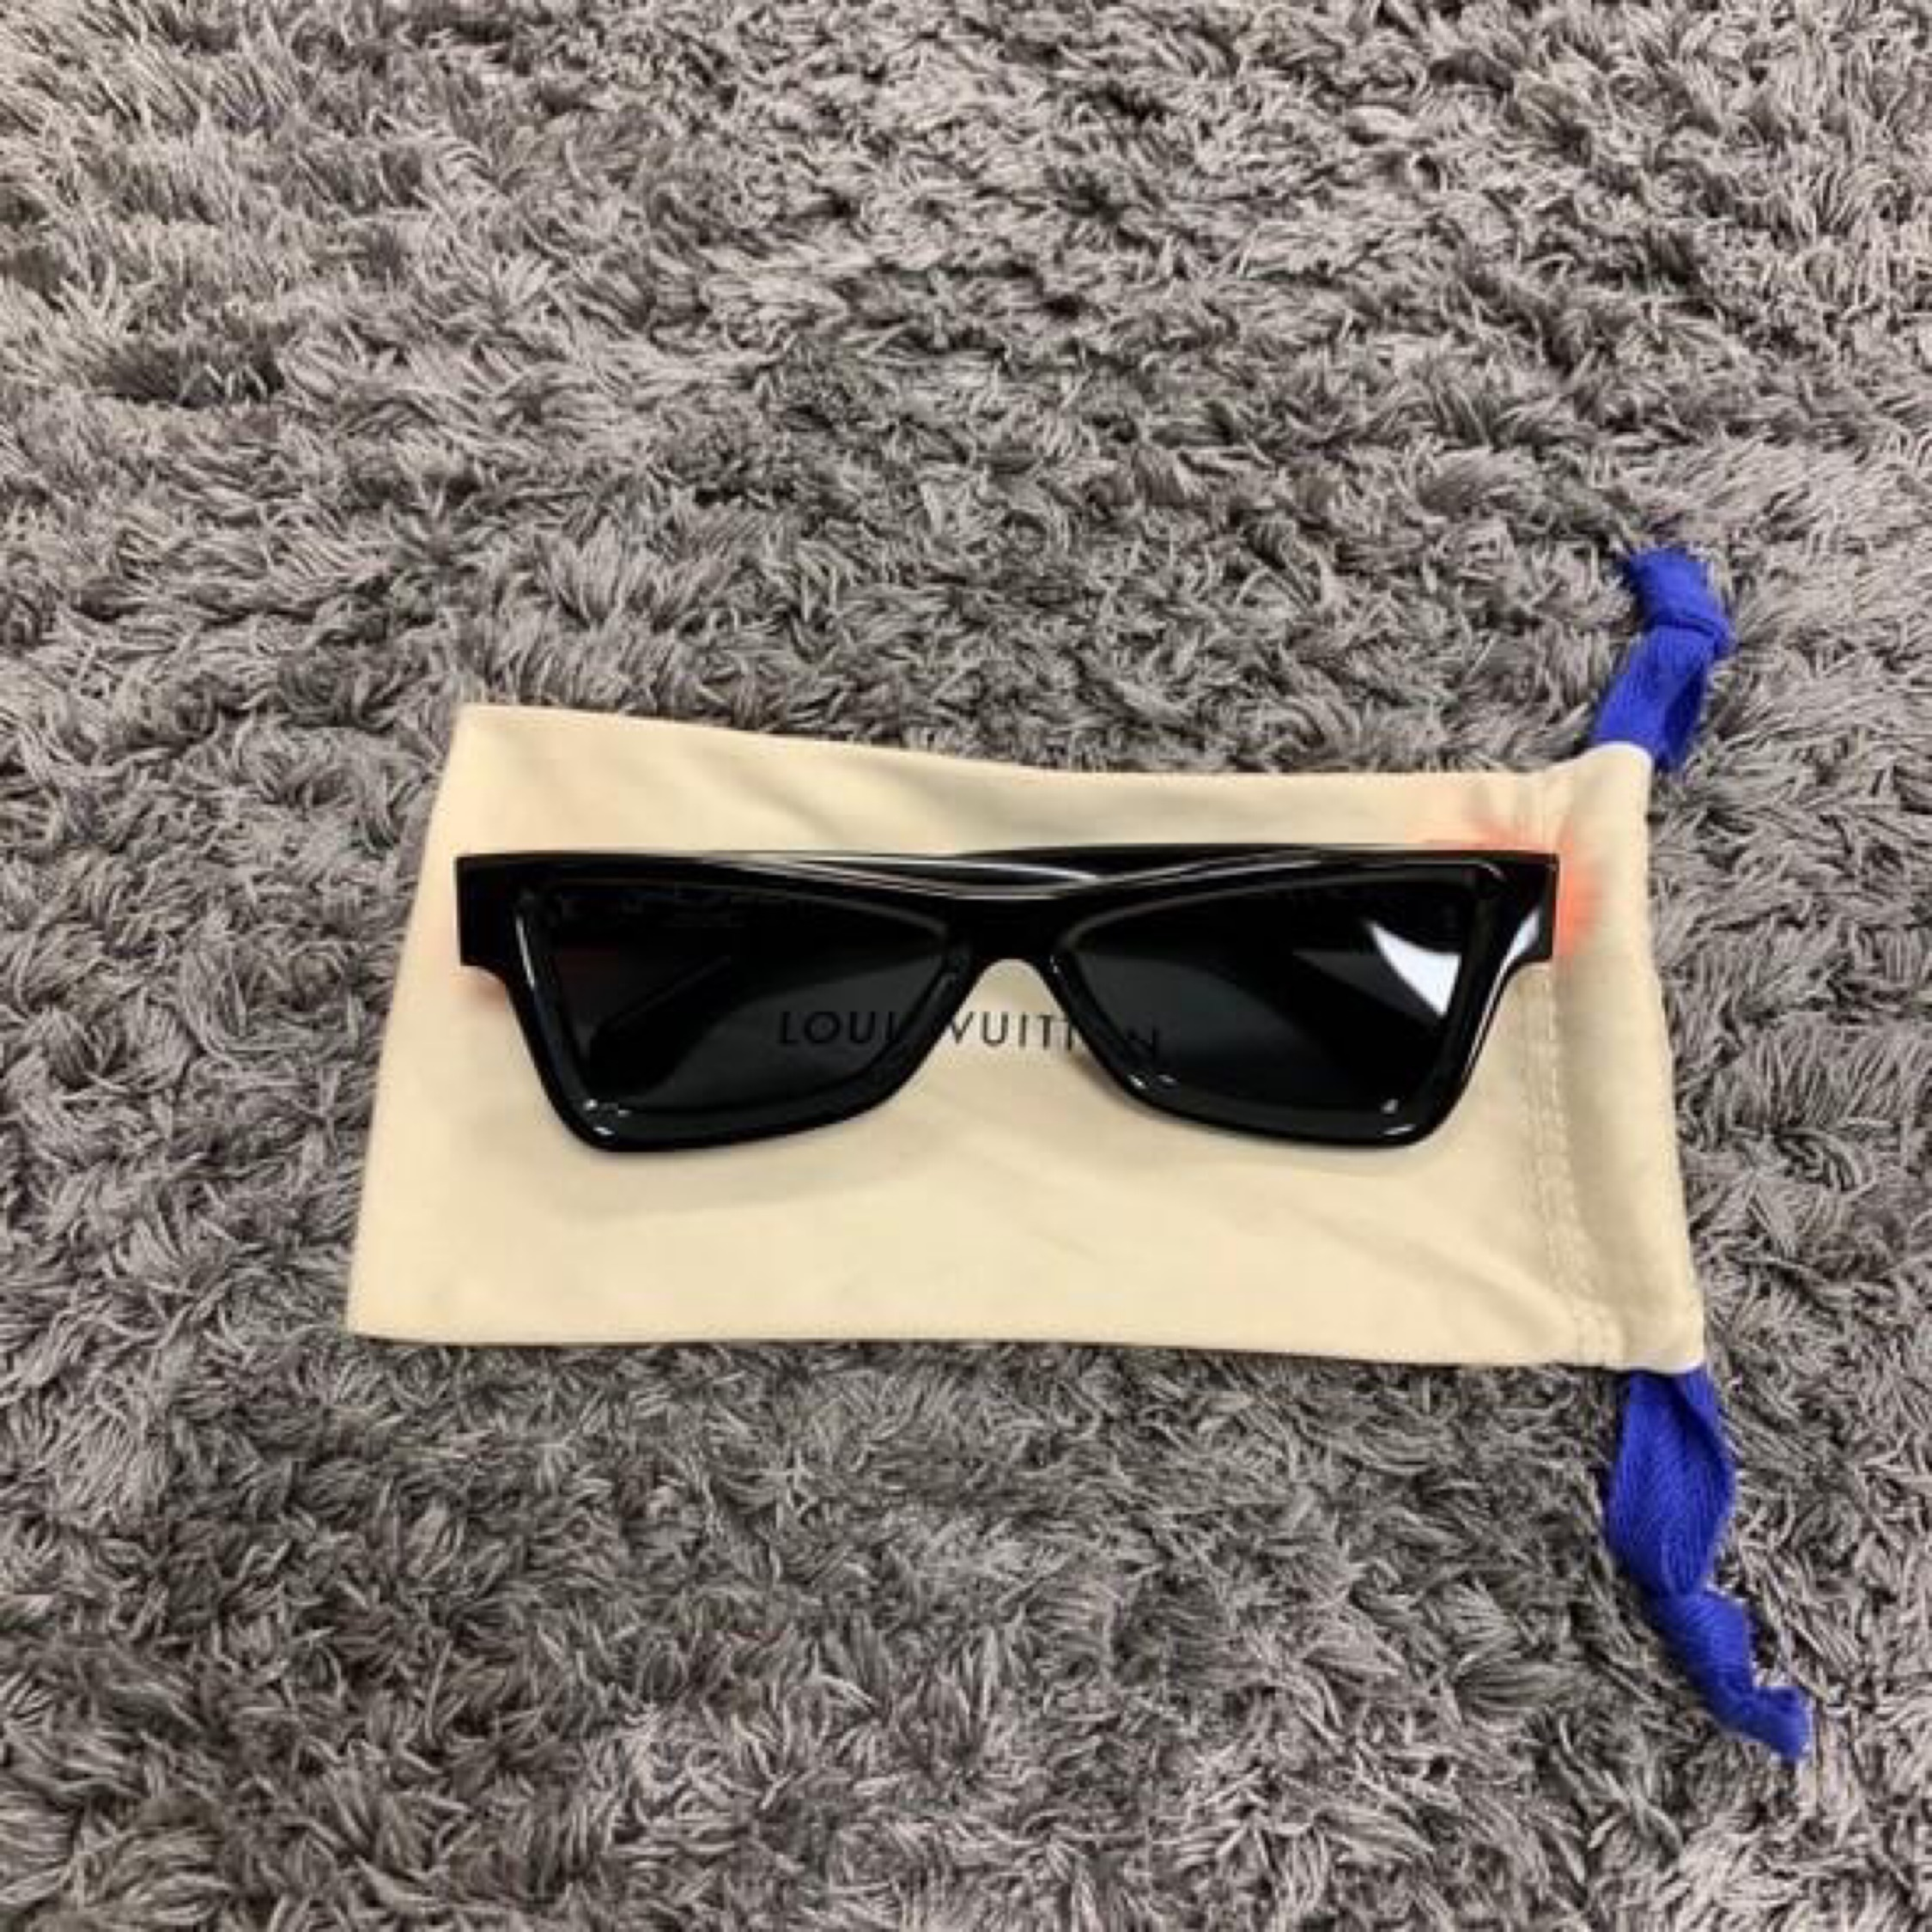 Louis Vuitton Skeptical Sunglasses